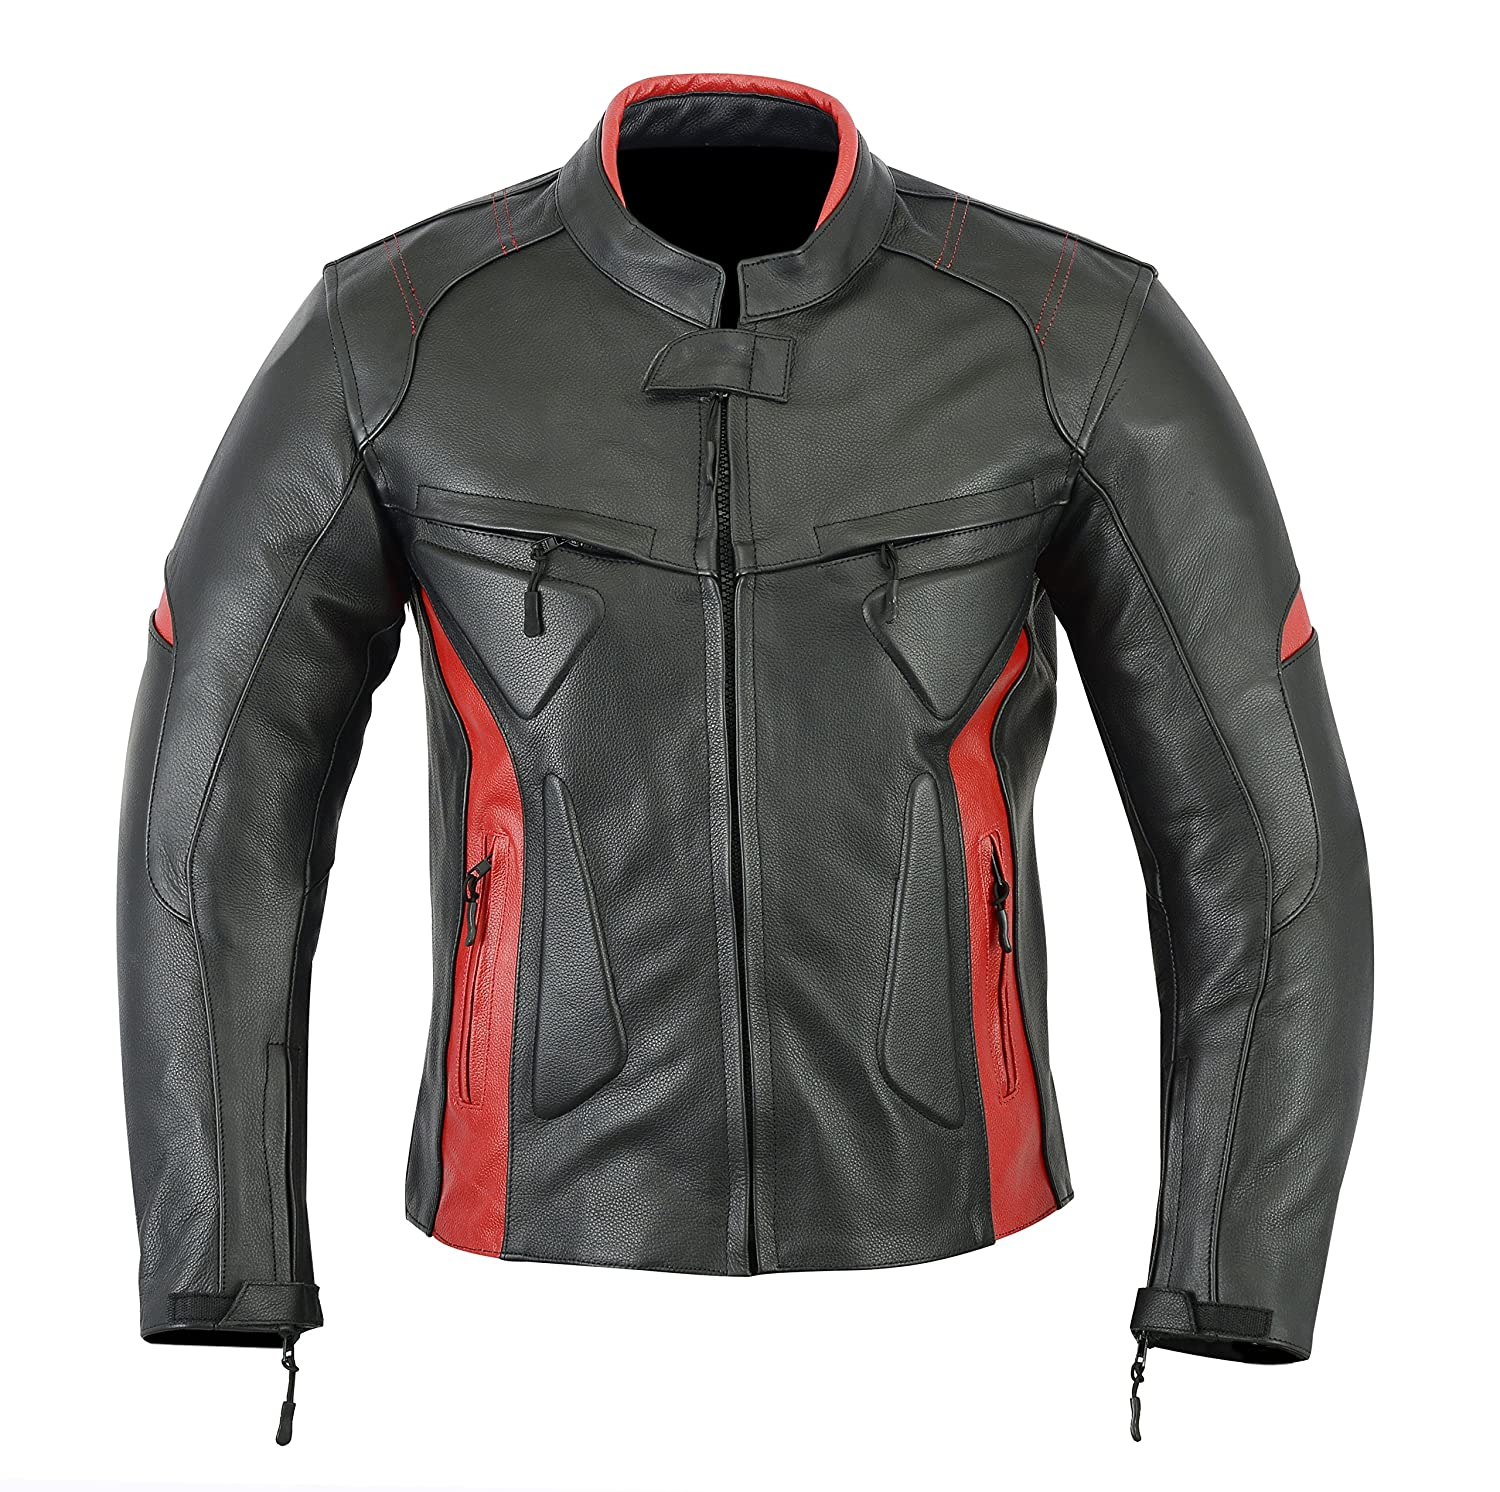 MOTORCYCLE BIKERS MENS ARMOR POWER SPORTS LEATHER MENS JACKET BLACK RED LJ-1704 L Leather teknik